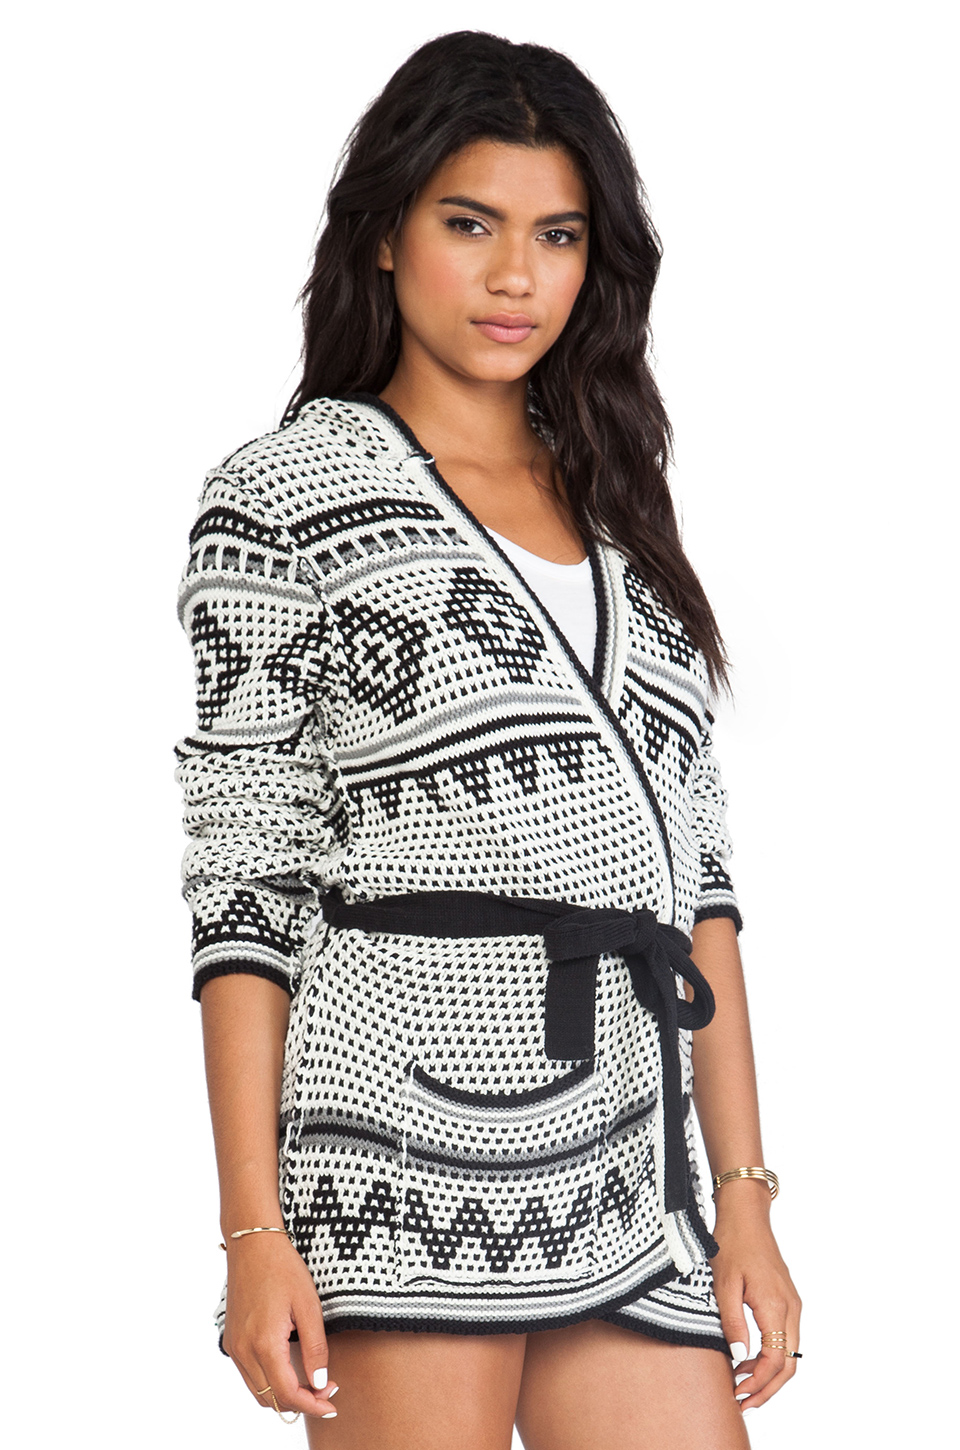 Chaser hooded cardigan in navajo blanket from revolveclothing.com